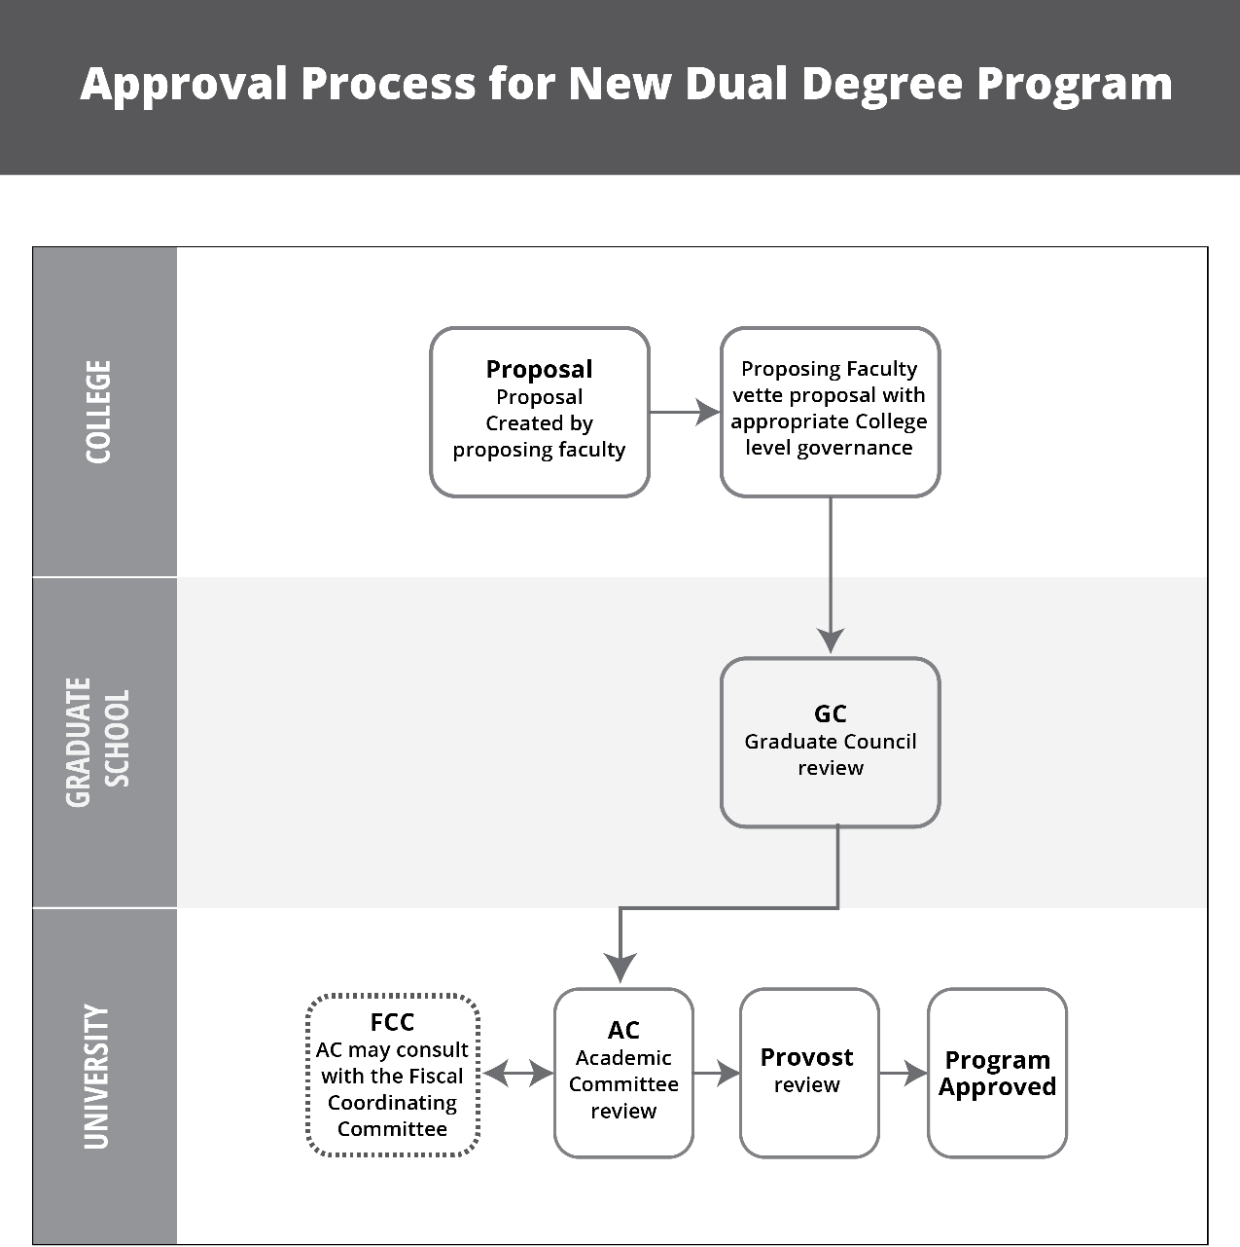 The steps for approval for a new dual degree program.